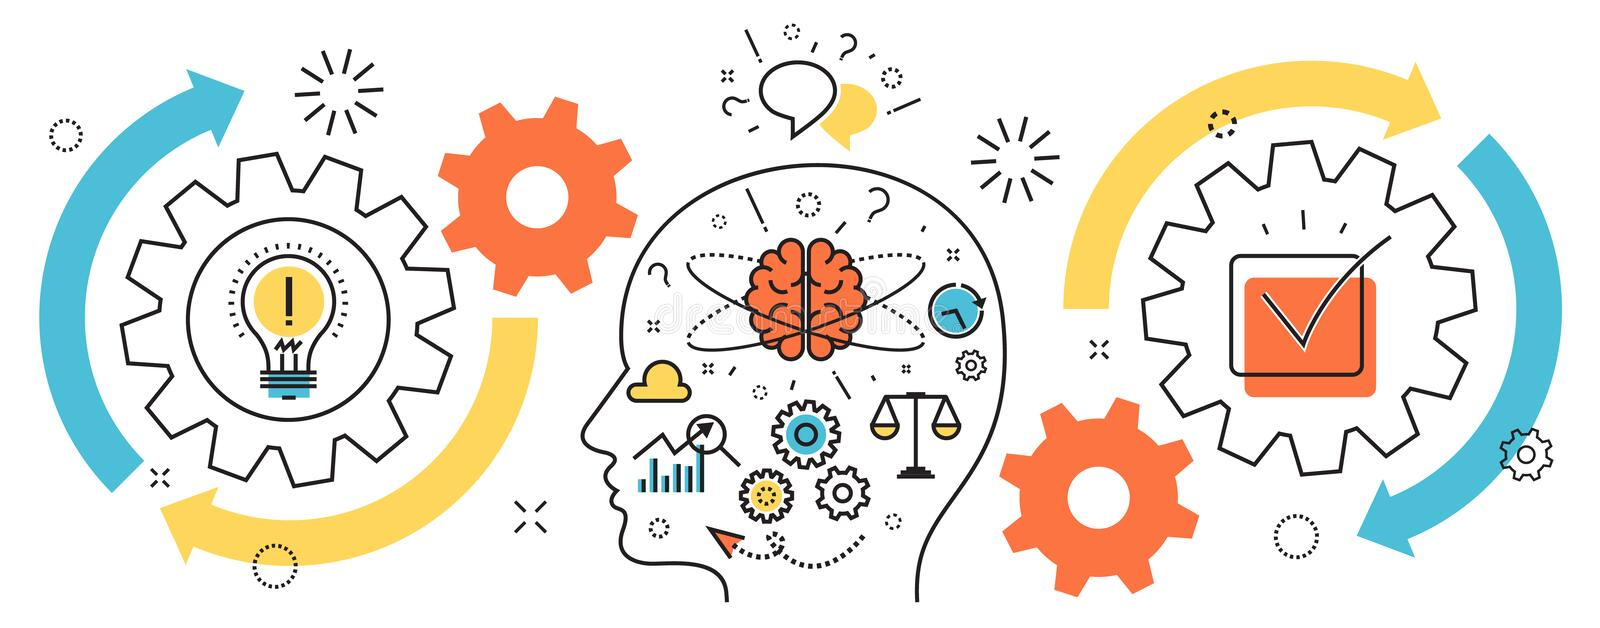 Thought process business startup idea mechanism into man brain. Flat line illustration of born business project startup thought process mechanism into man brain stock illustration